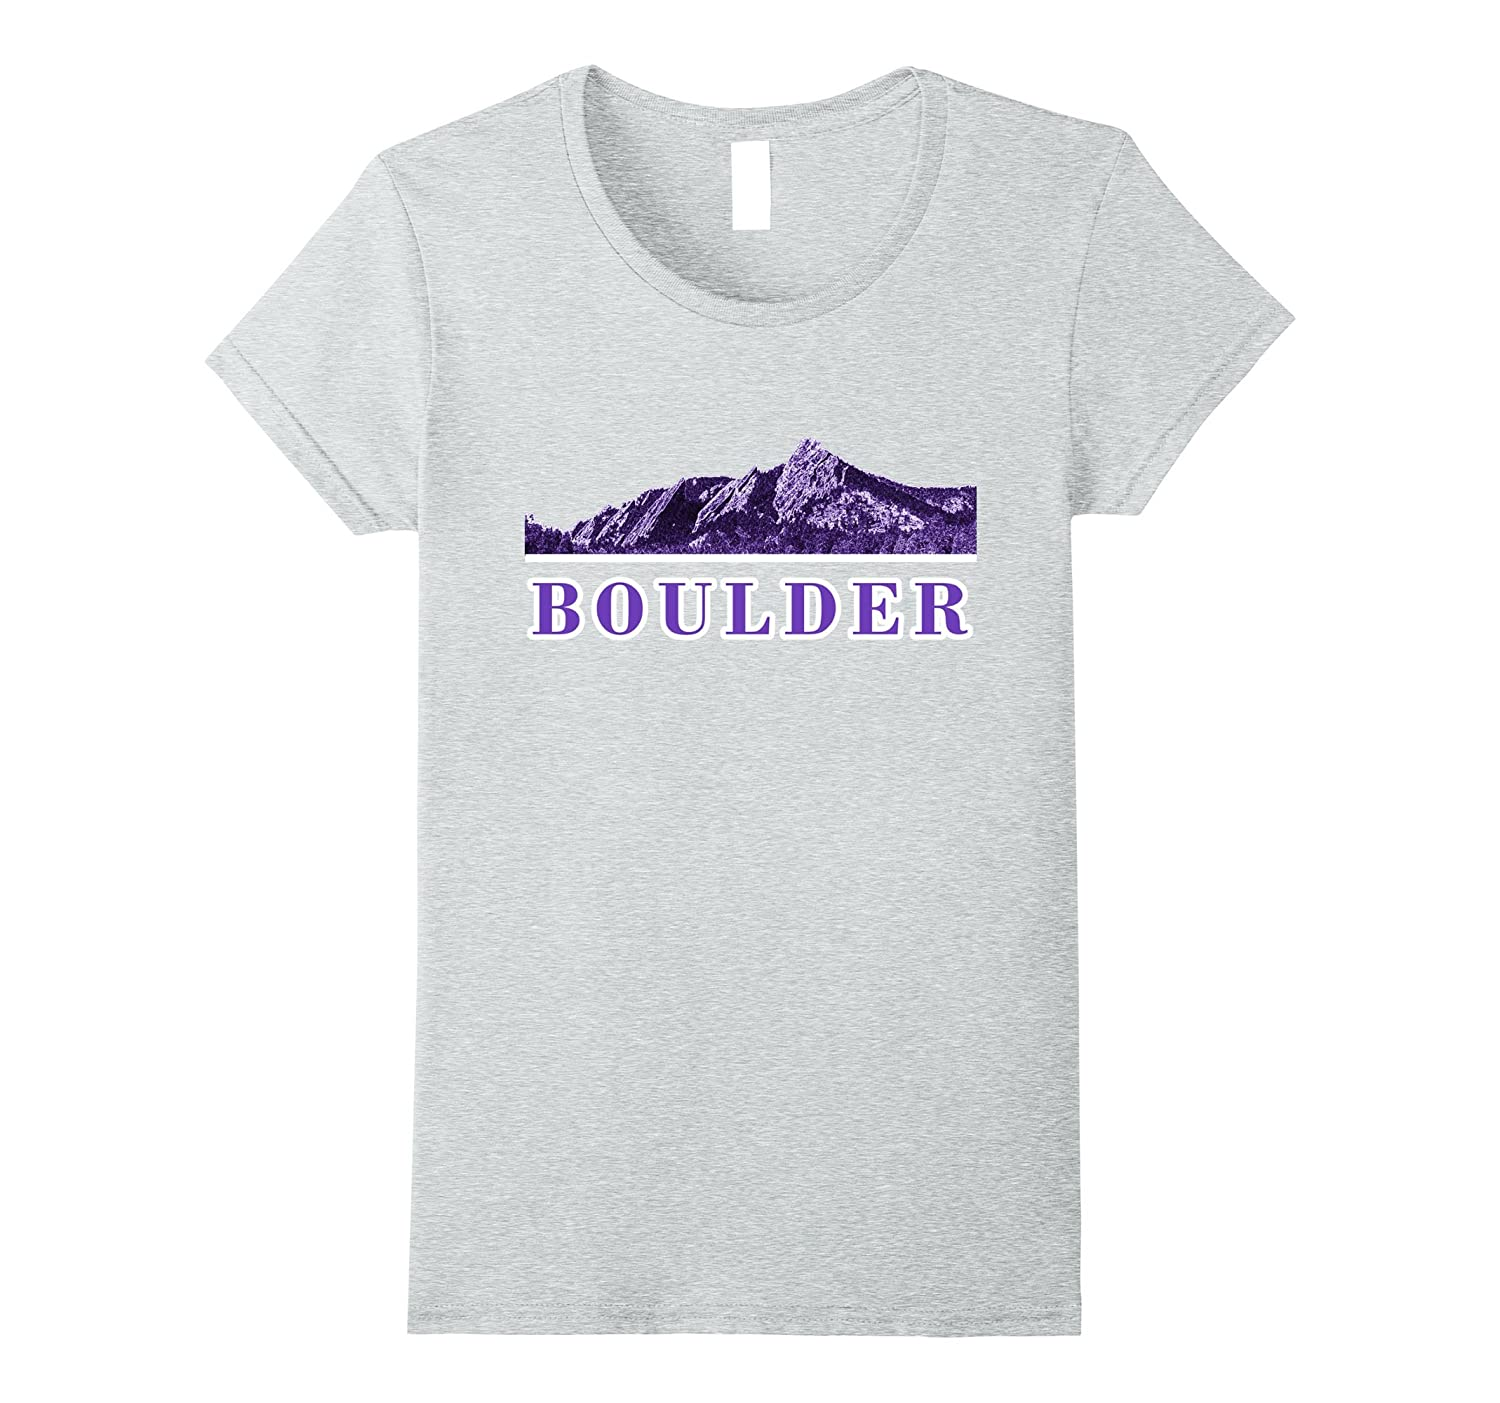 Boulder Colorado Shirt with The Boulder Flat Irons Purple